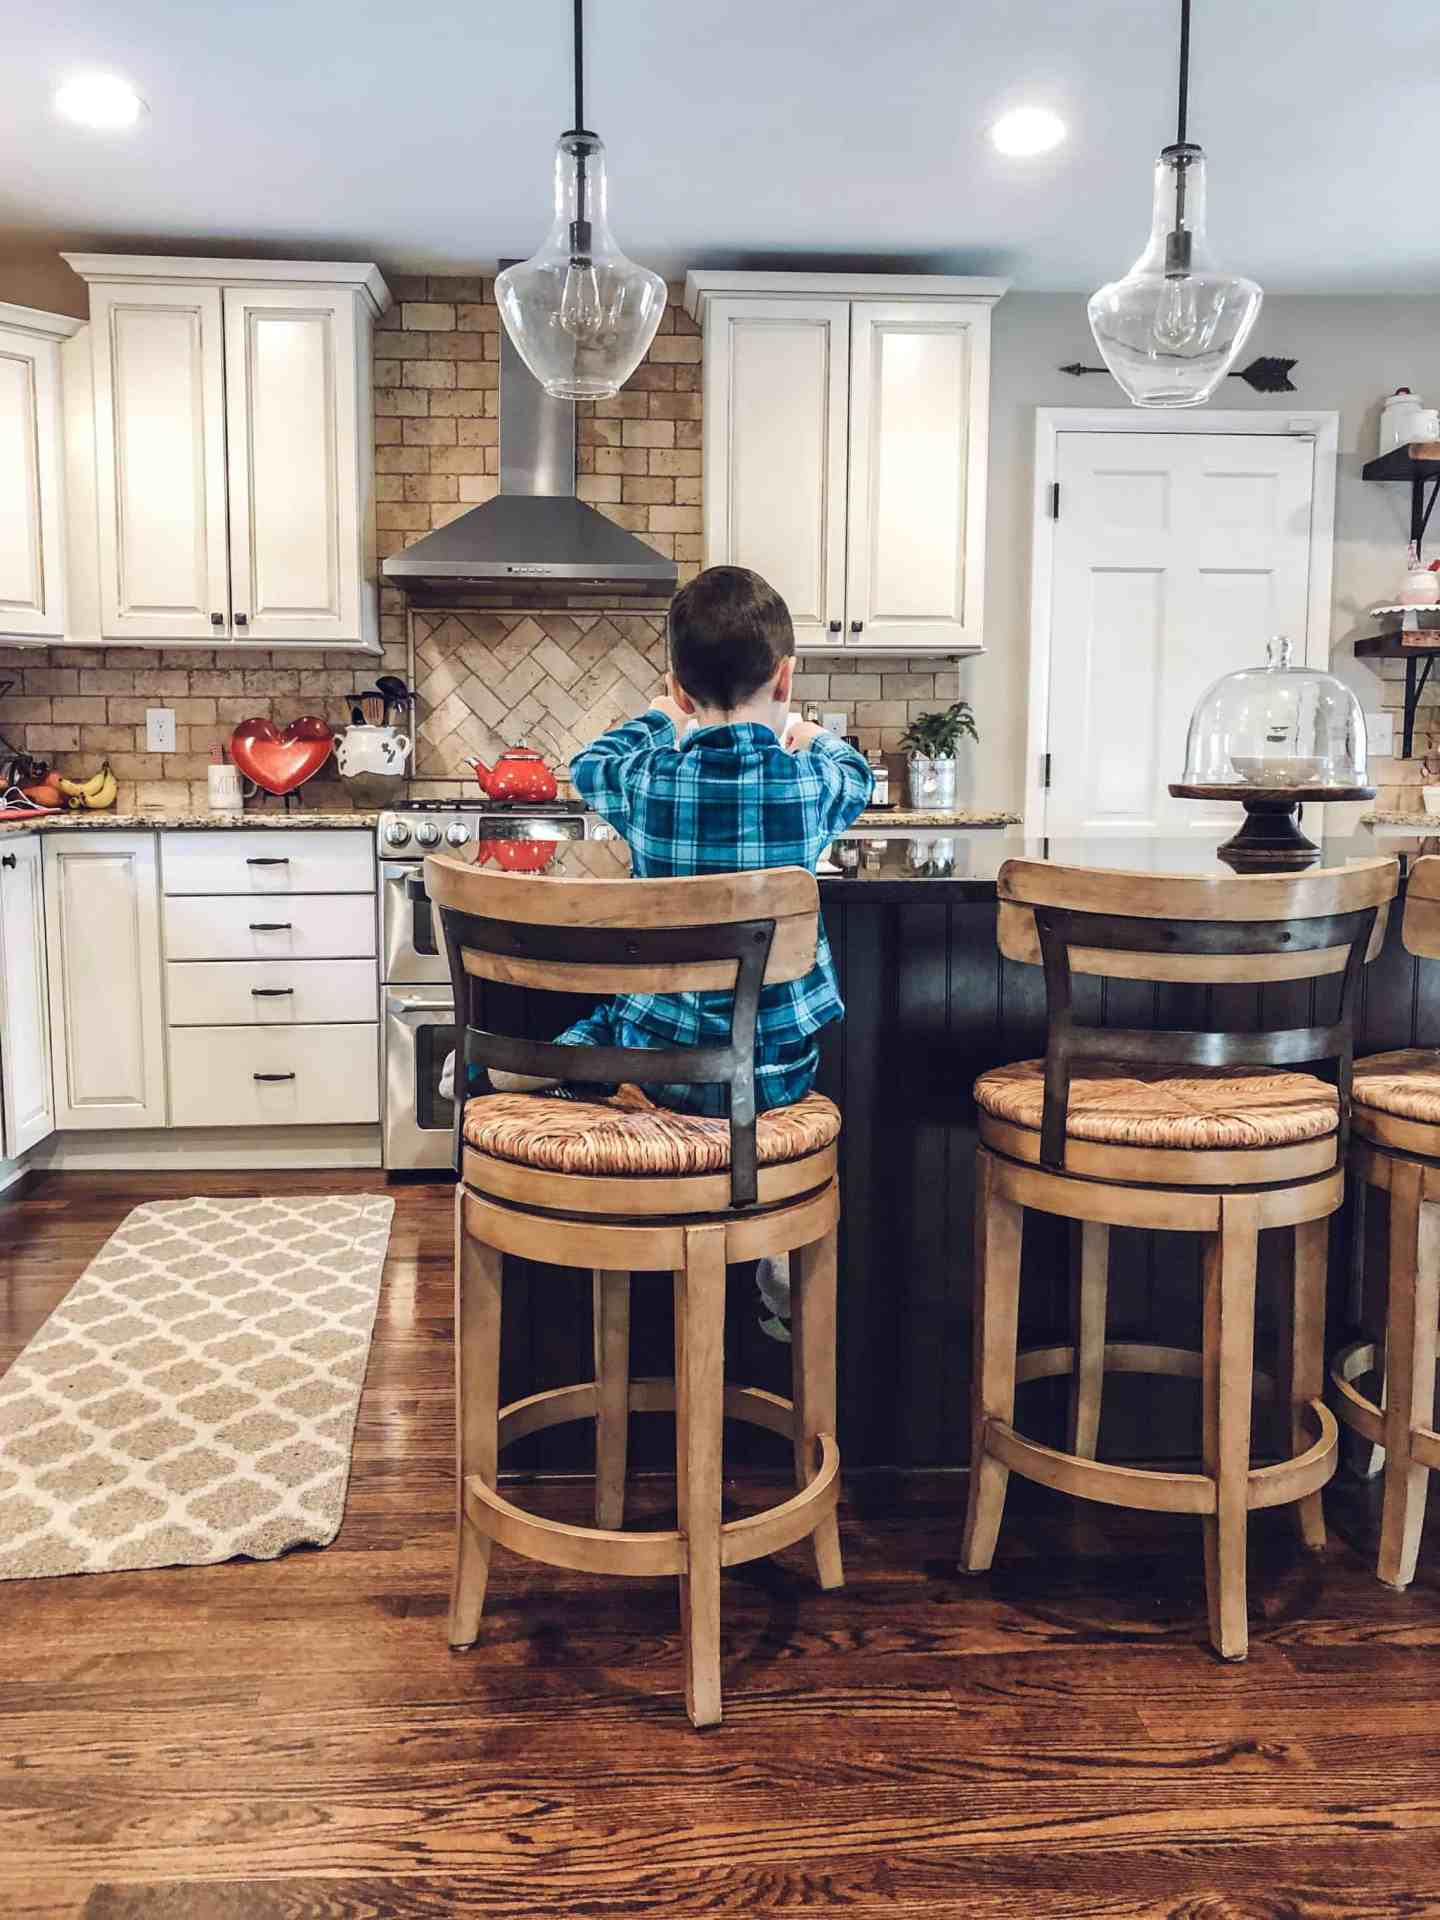 Mom Blogger sharing her life from her farmhouse style home #mommyblogger #farmhousekitchen #lifestyleblogger